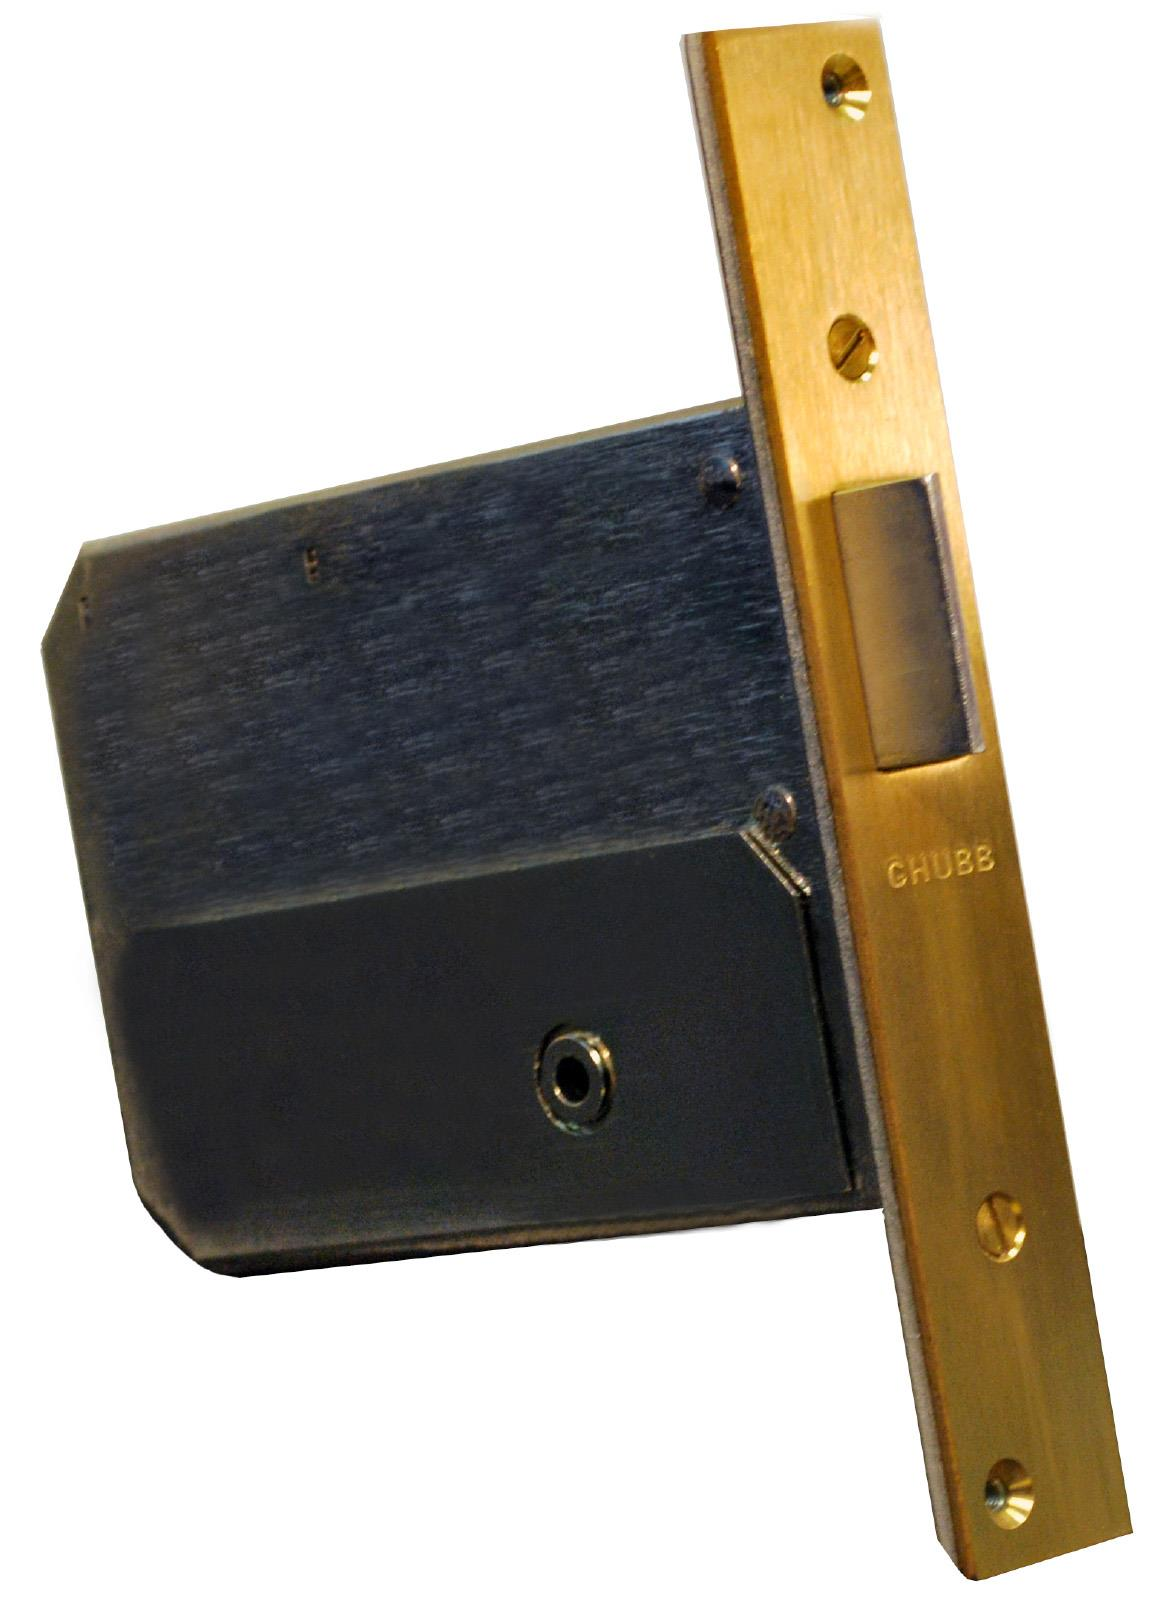 3R47 - Morticed Latch Lock